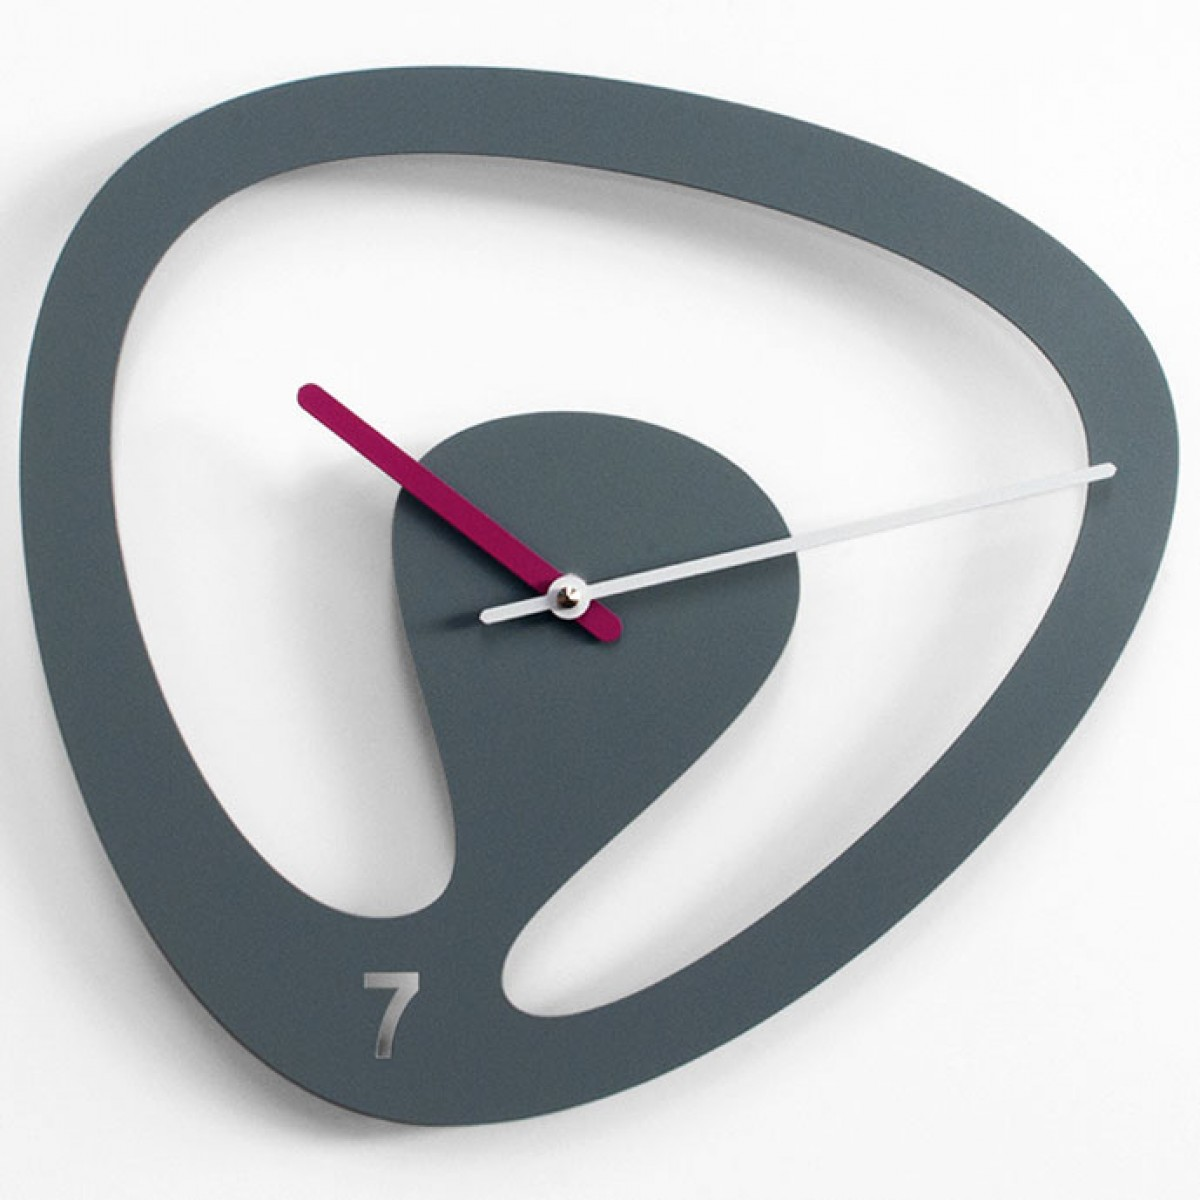 seven wall clock grey - Modern Designer Wall Clocks